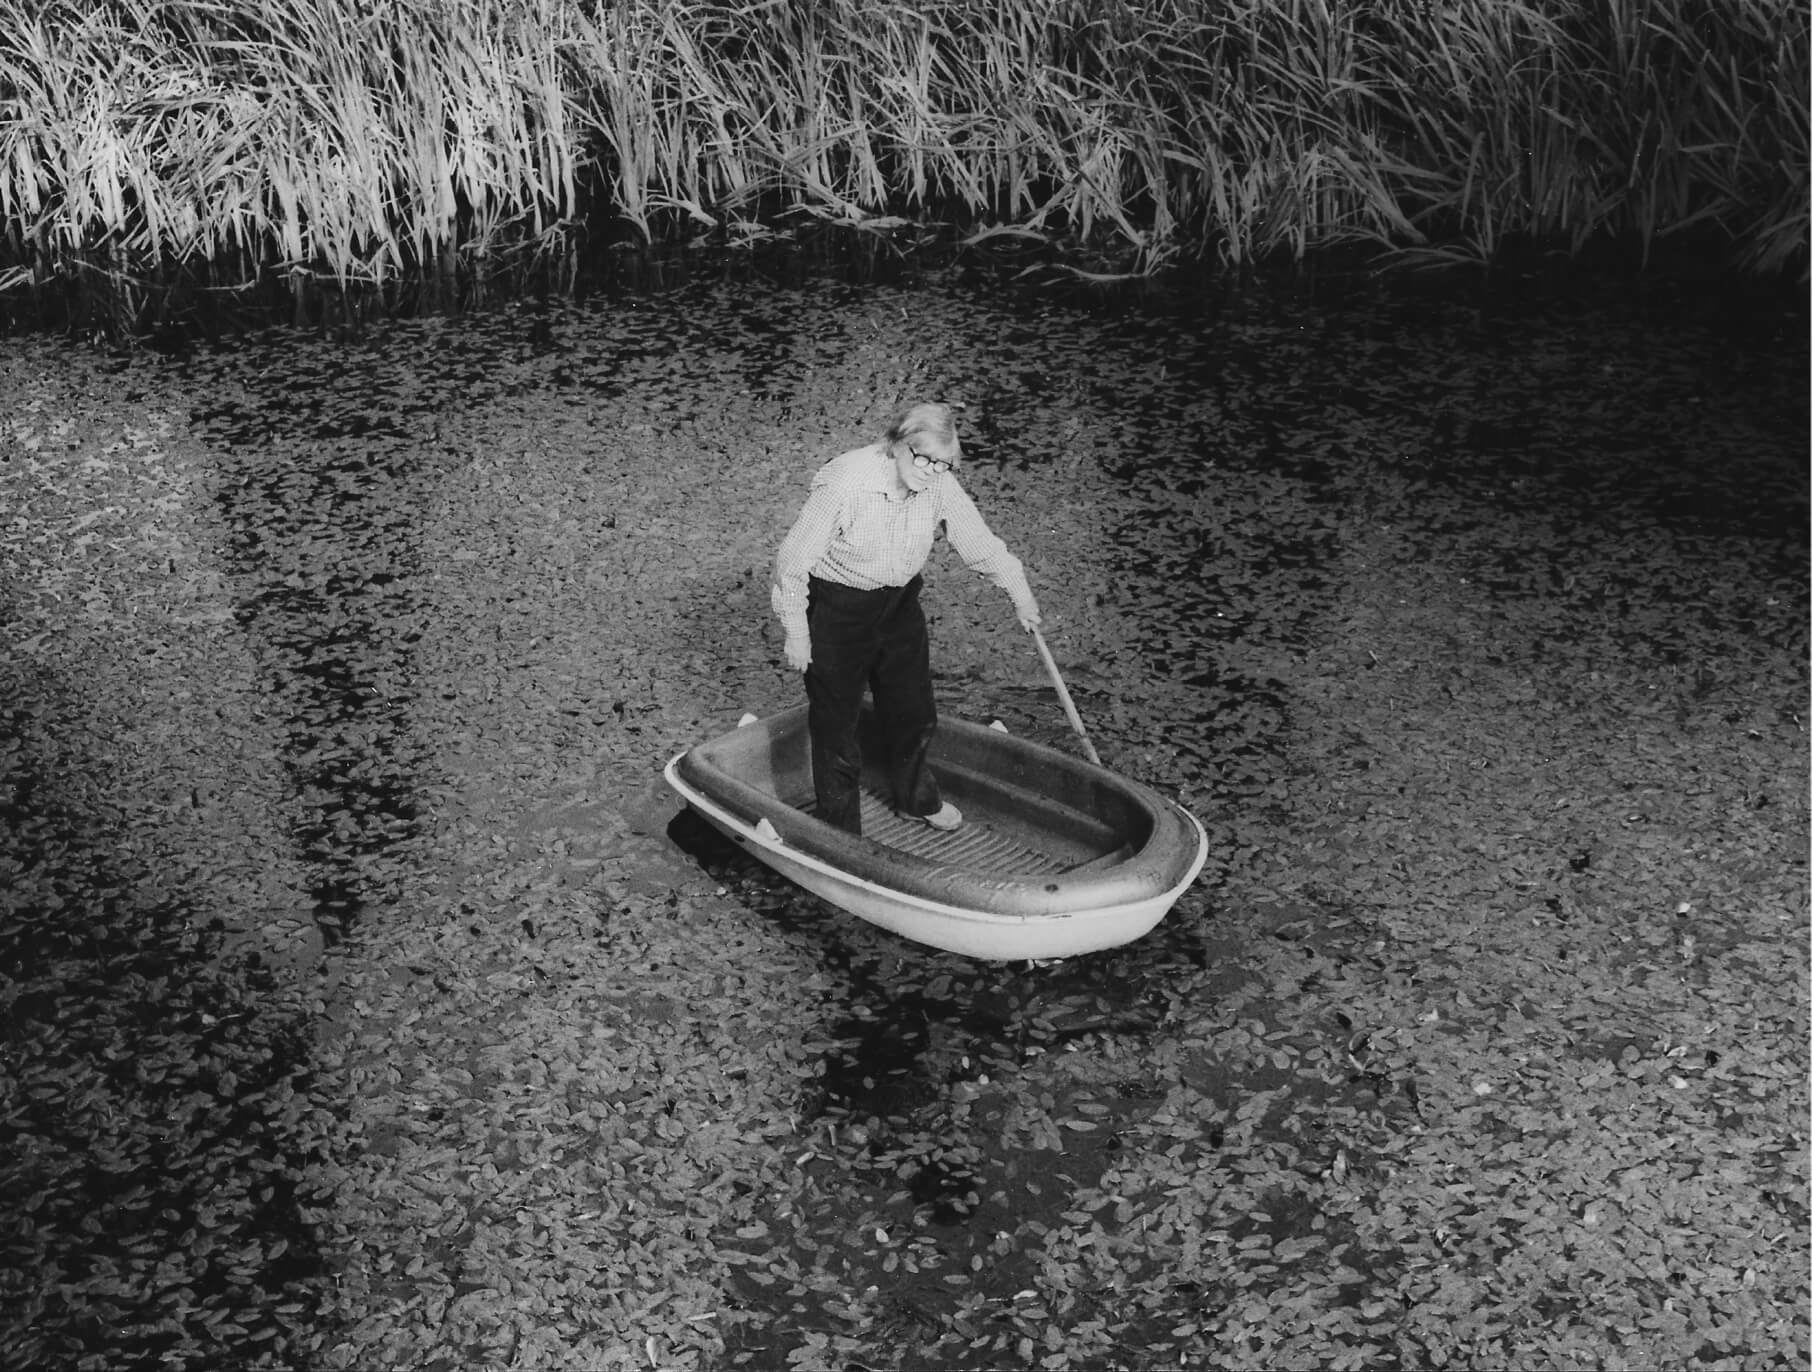 George Rickey standing in boat floating on a pond, Germany, 1987